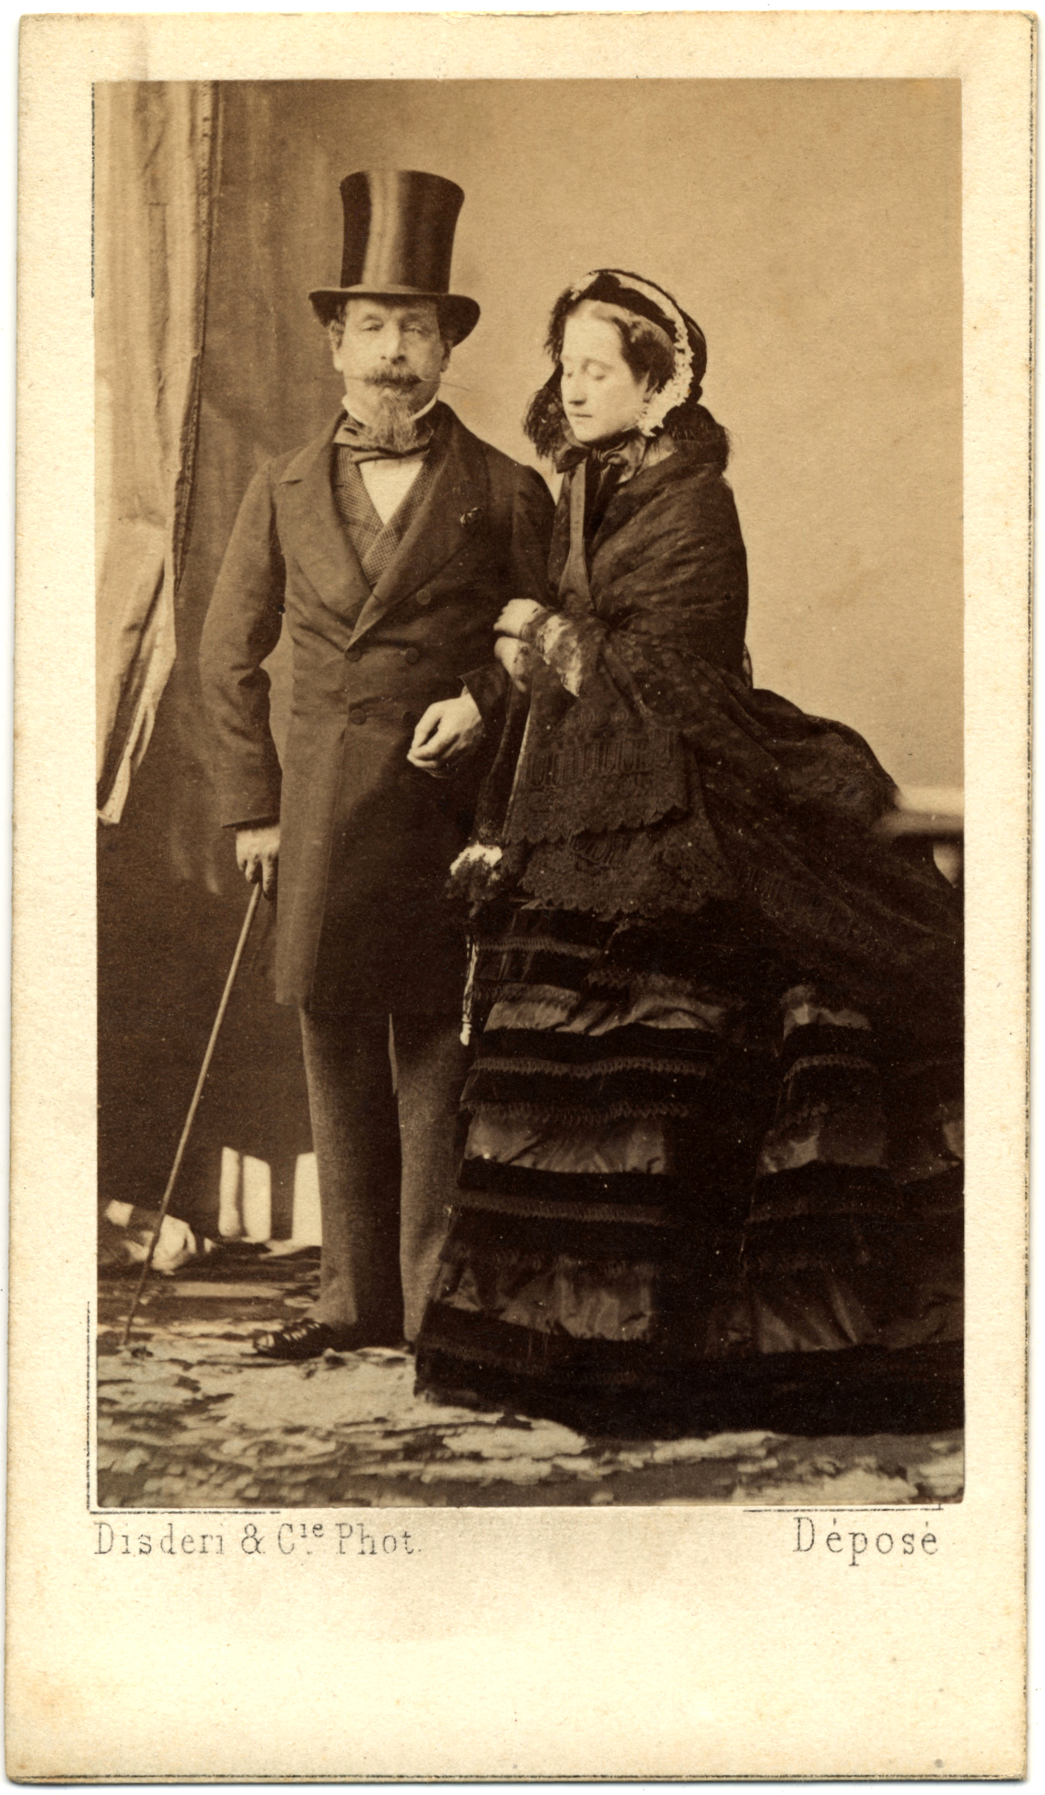 Napolon III And His Wife Eugenie CDV By Disderi C1865